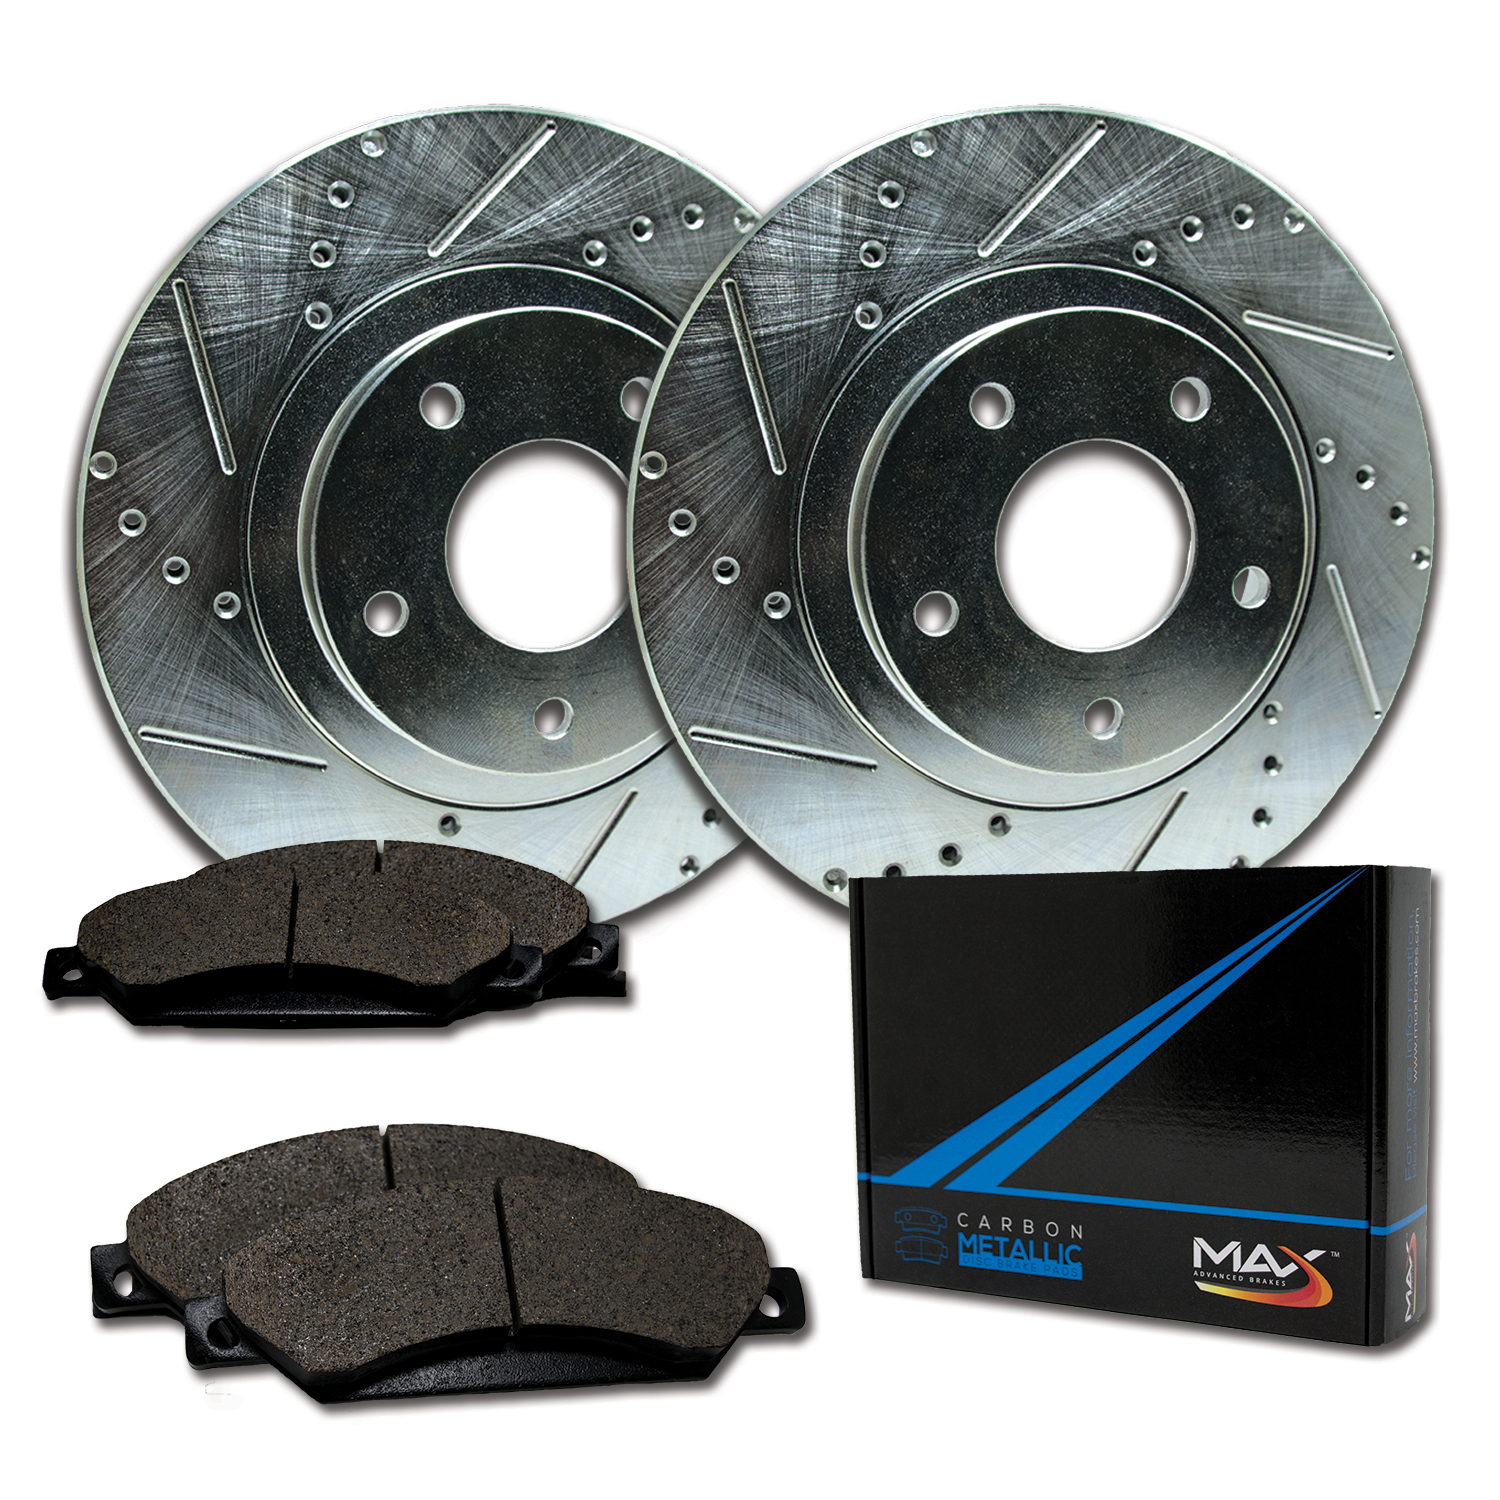 Max Brakes Rear Performance Brake Kit [ Silver Zinc Slotted Drilled Rotors + Metallic Pads ] TA016612 | Fits: 1997 97 Acura CL - image 8 of 8